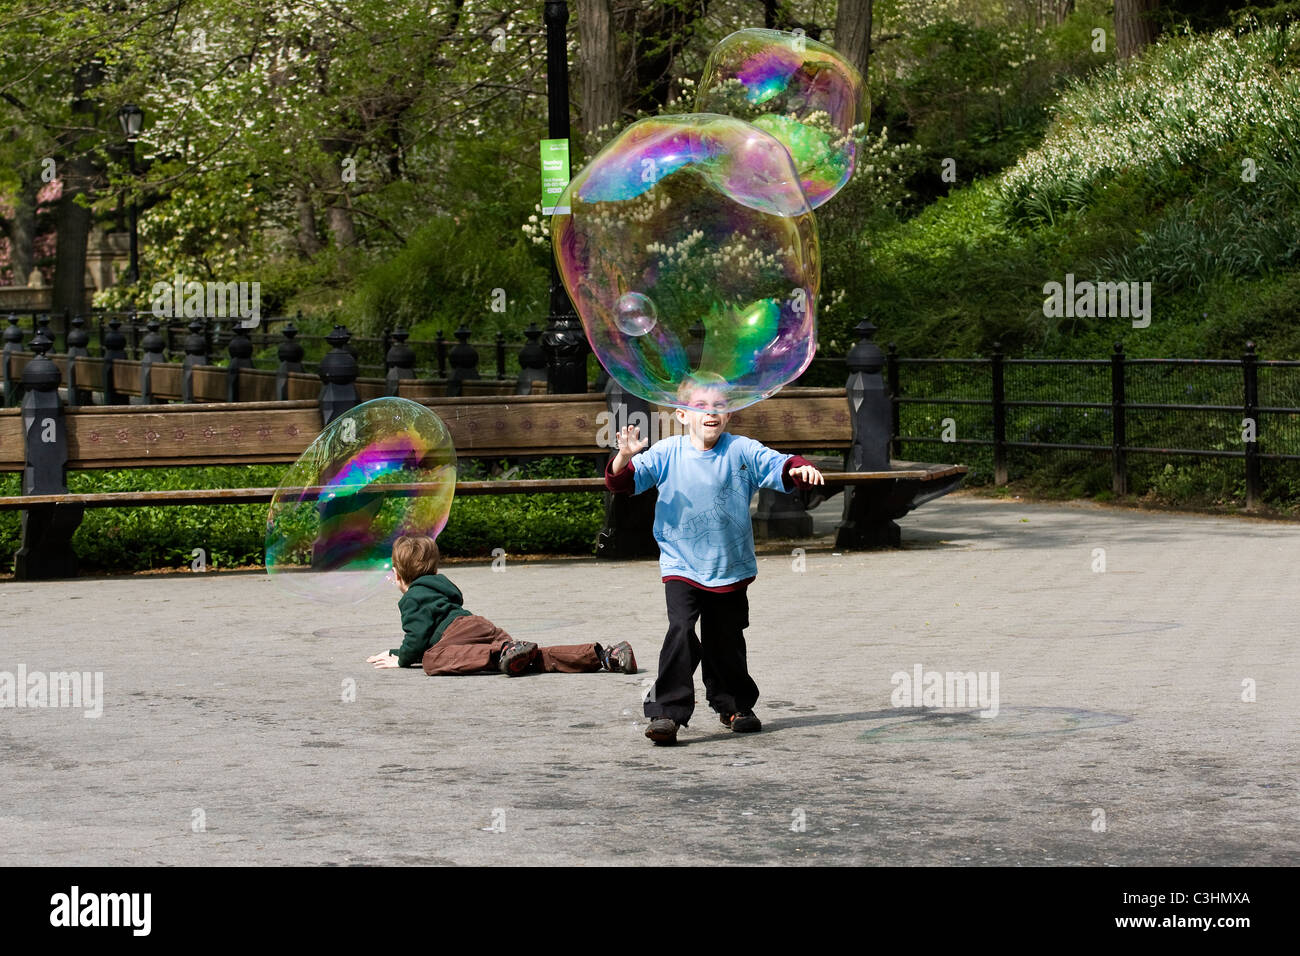 Two young boys chasing huge soap bubbles in a city park - Stock Image